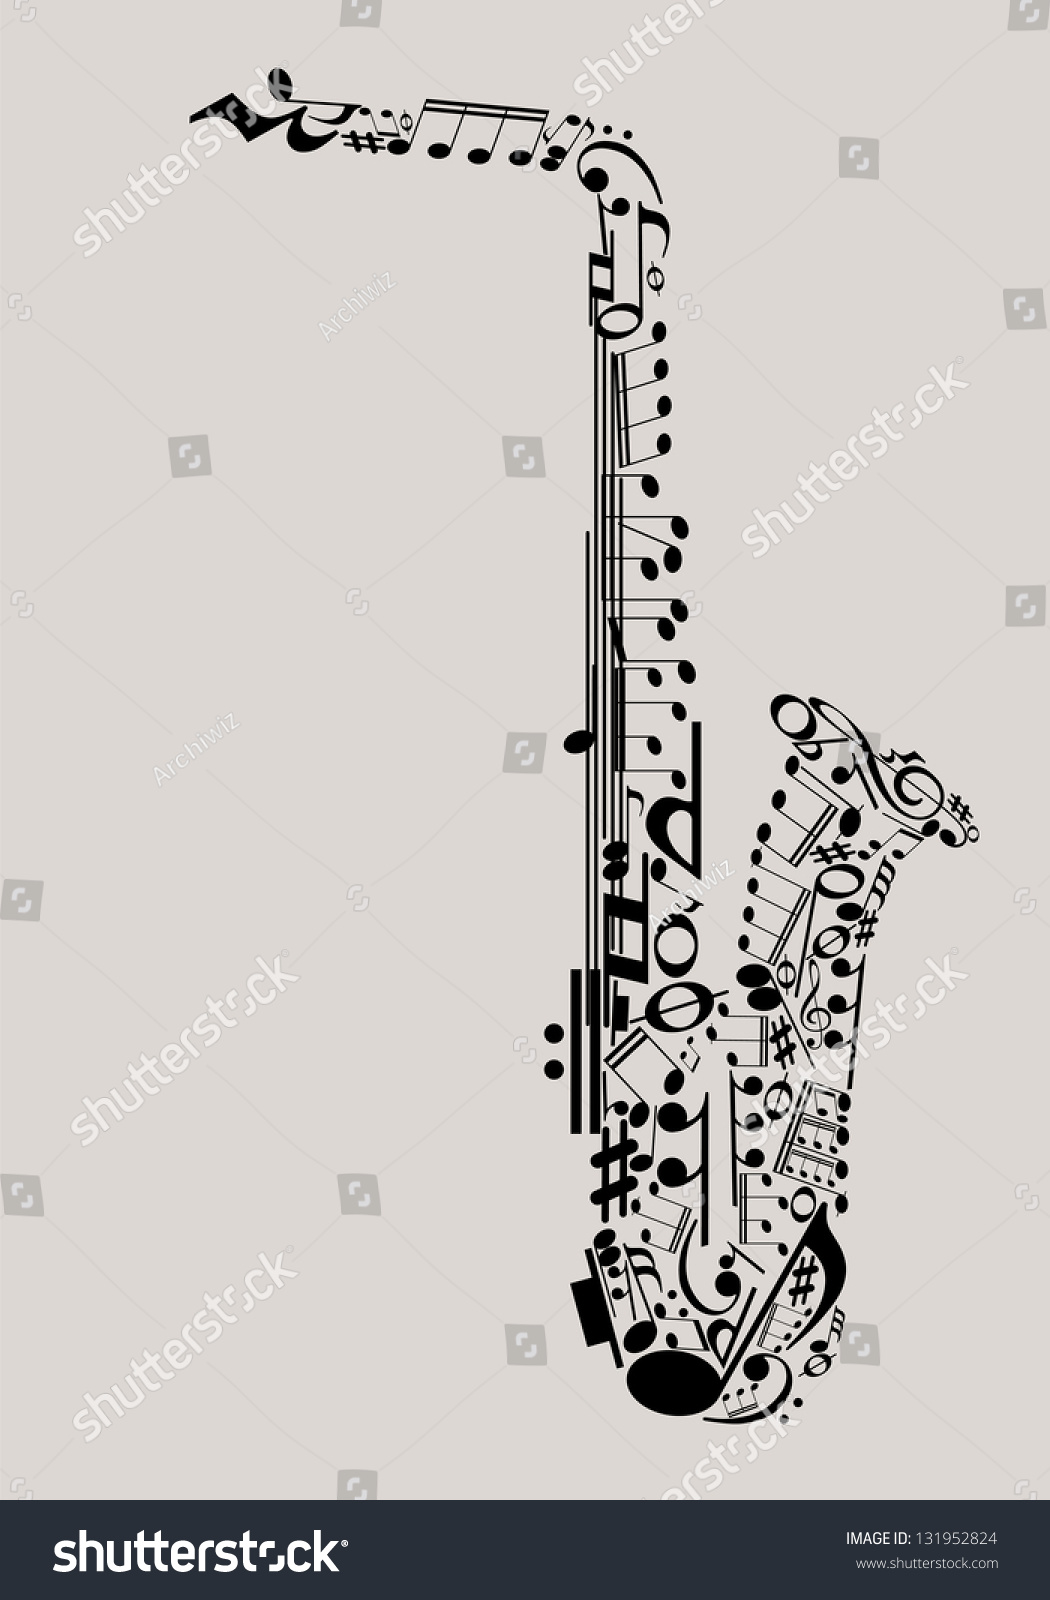 Royalty Free Jazz Music Saxophone Made With Musical 131952824